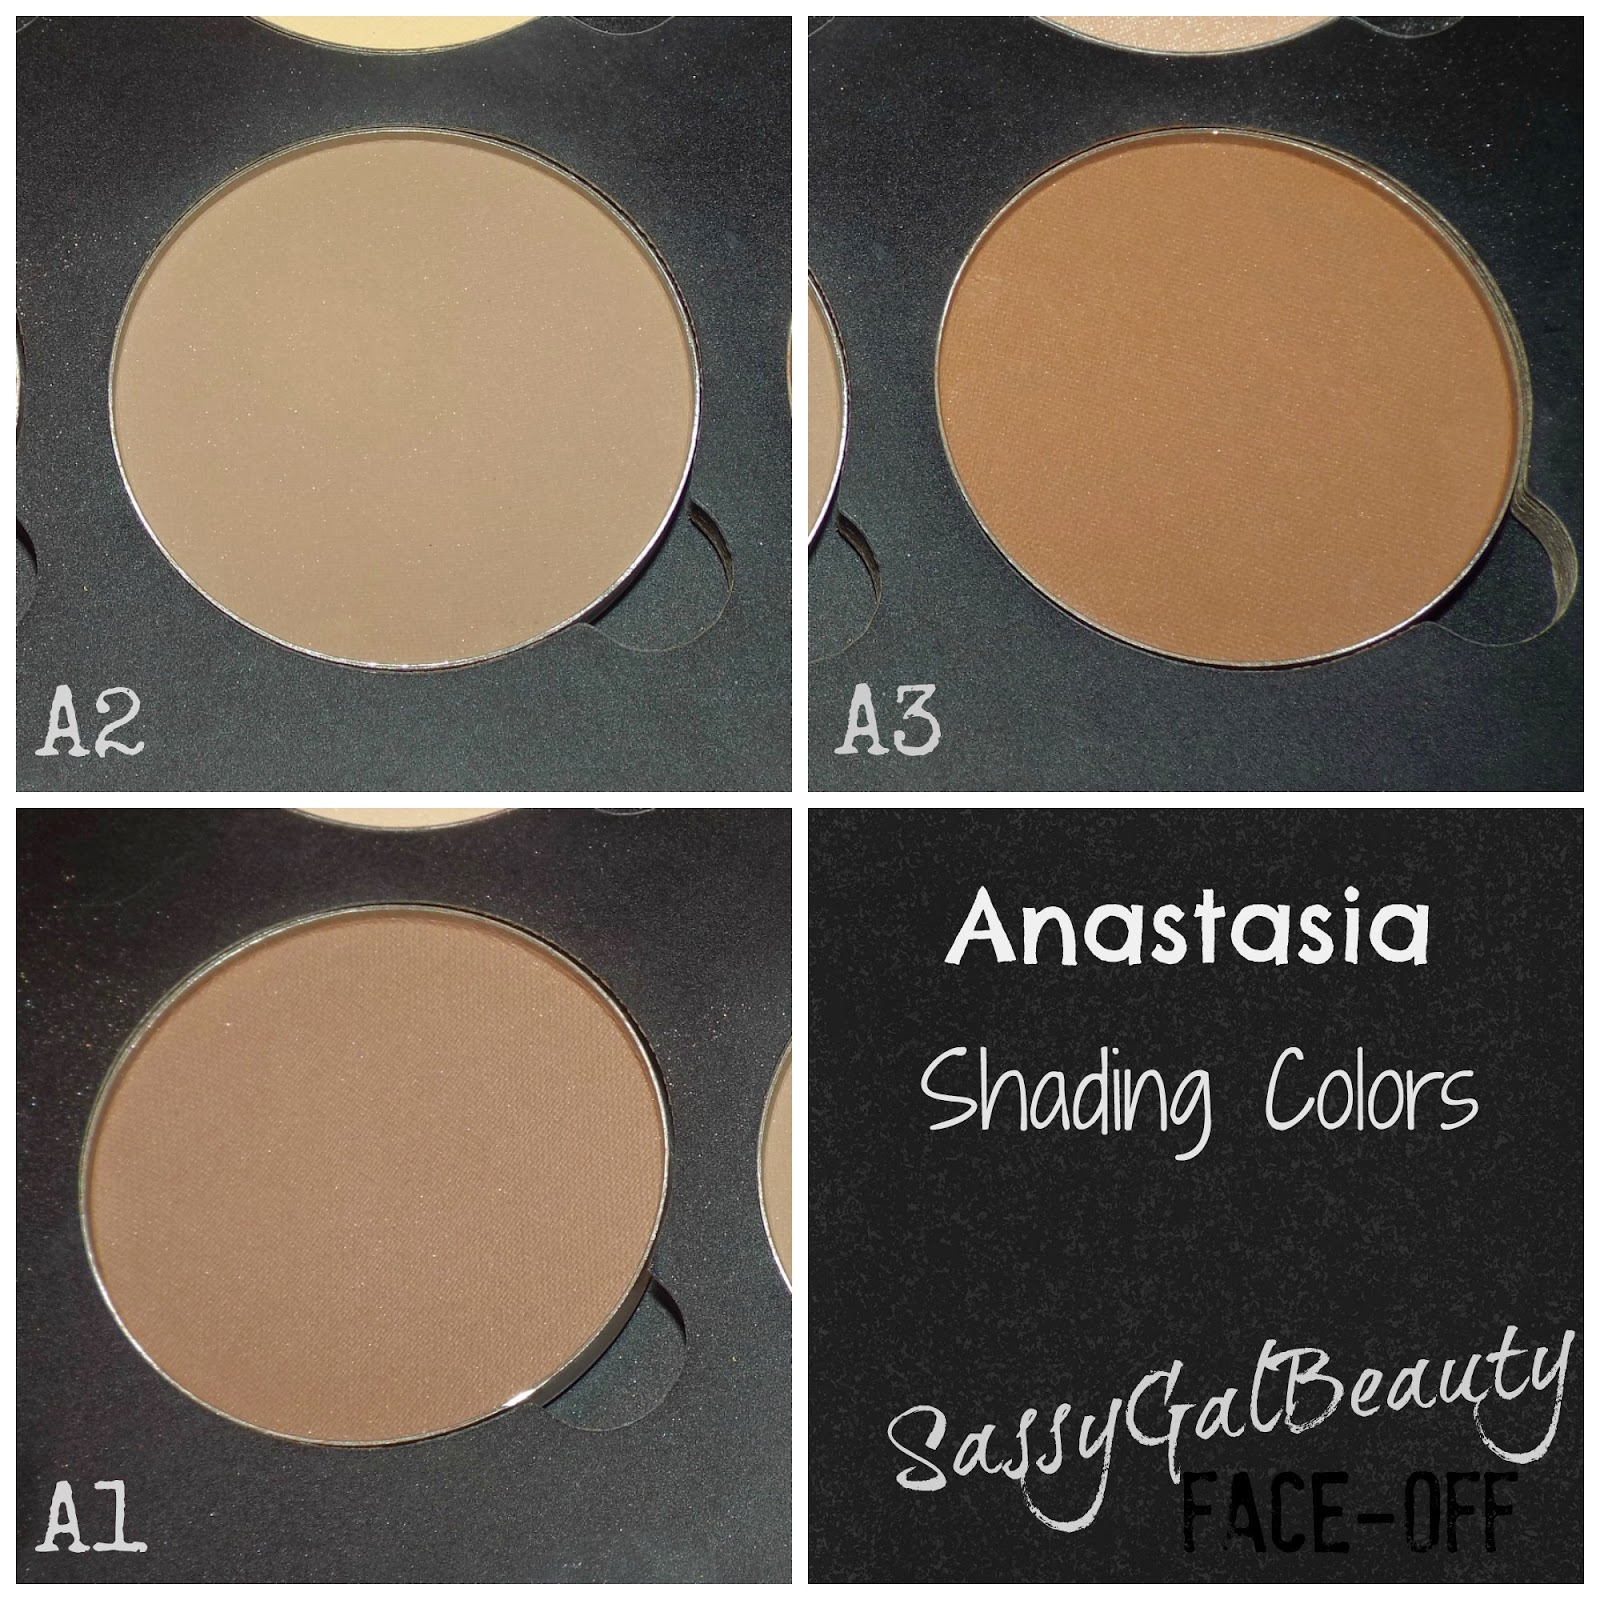 Anastasia Shading Colors